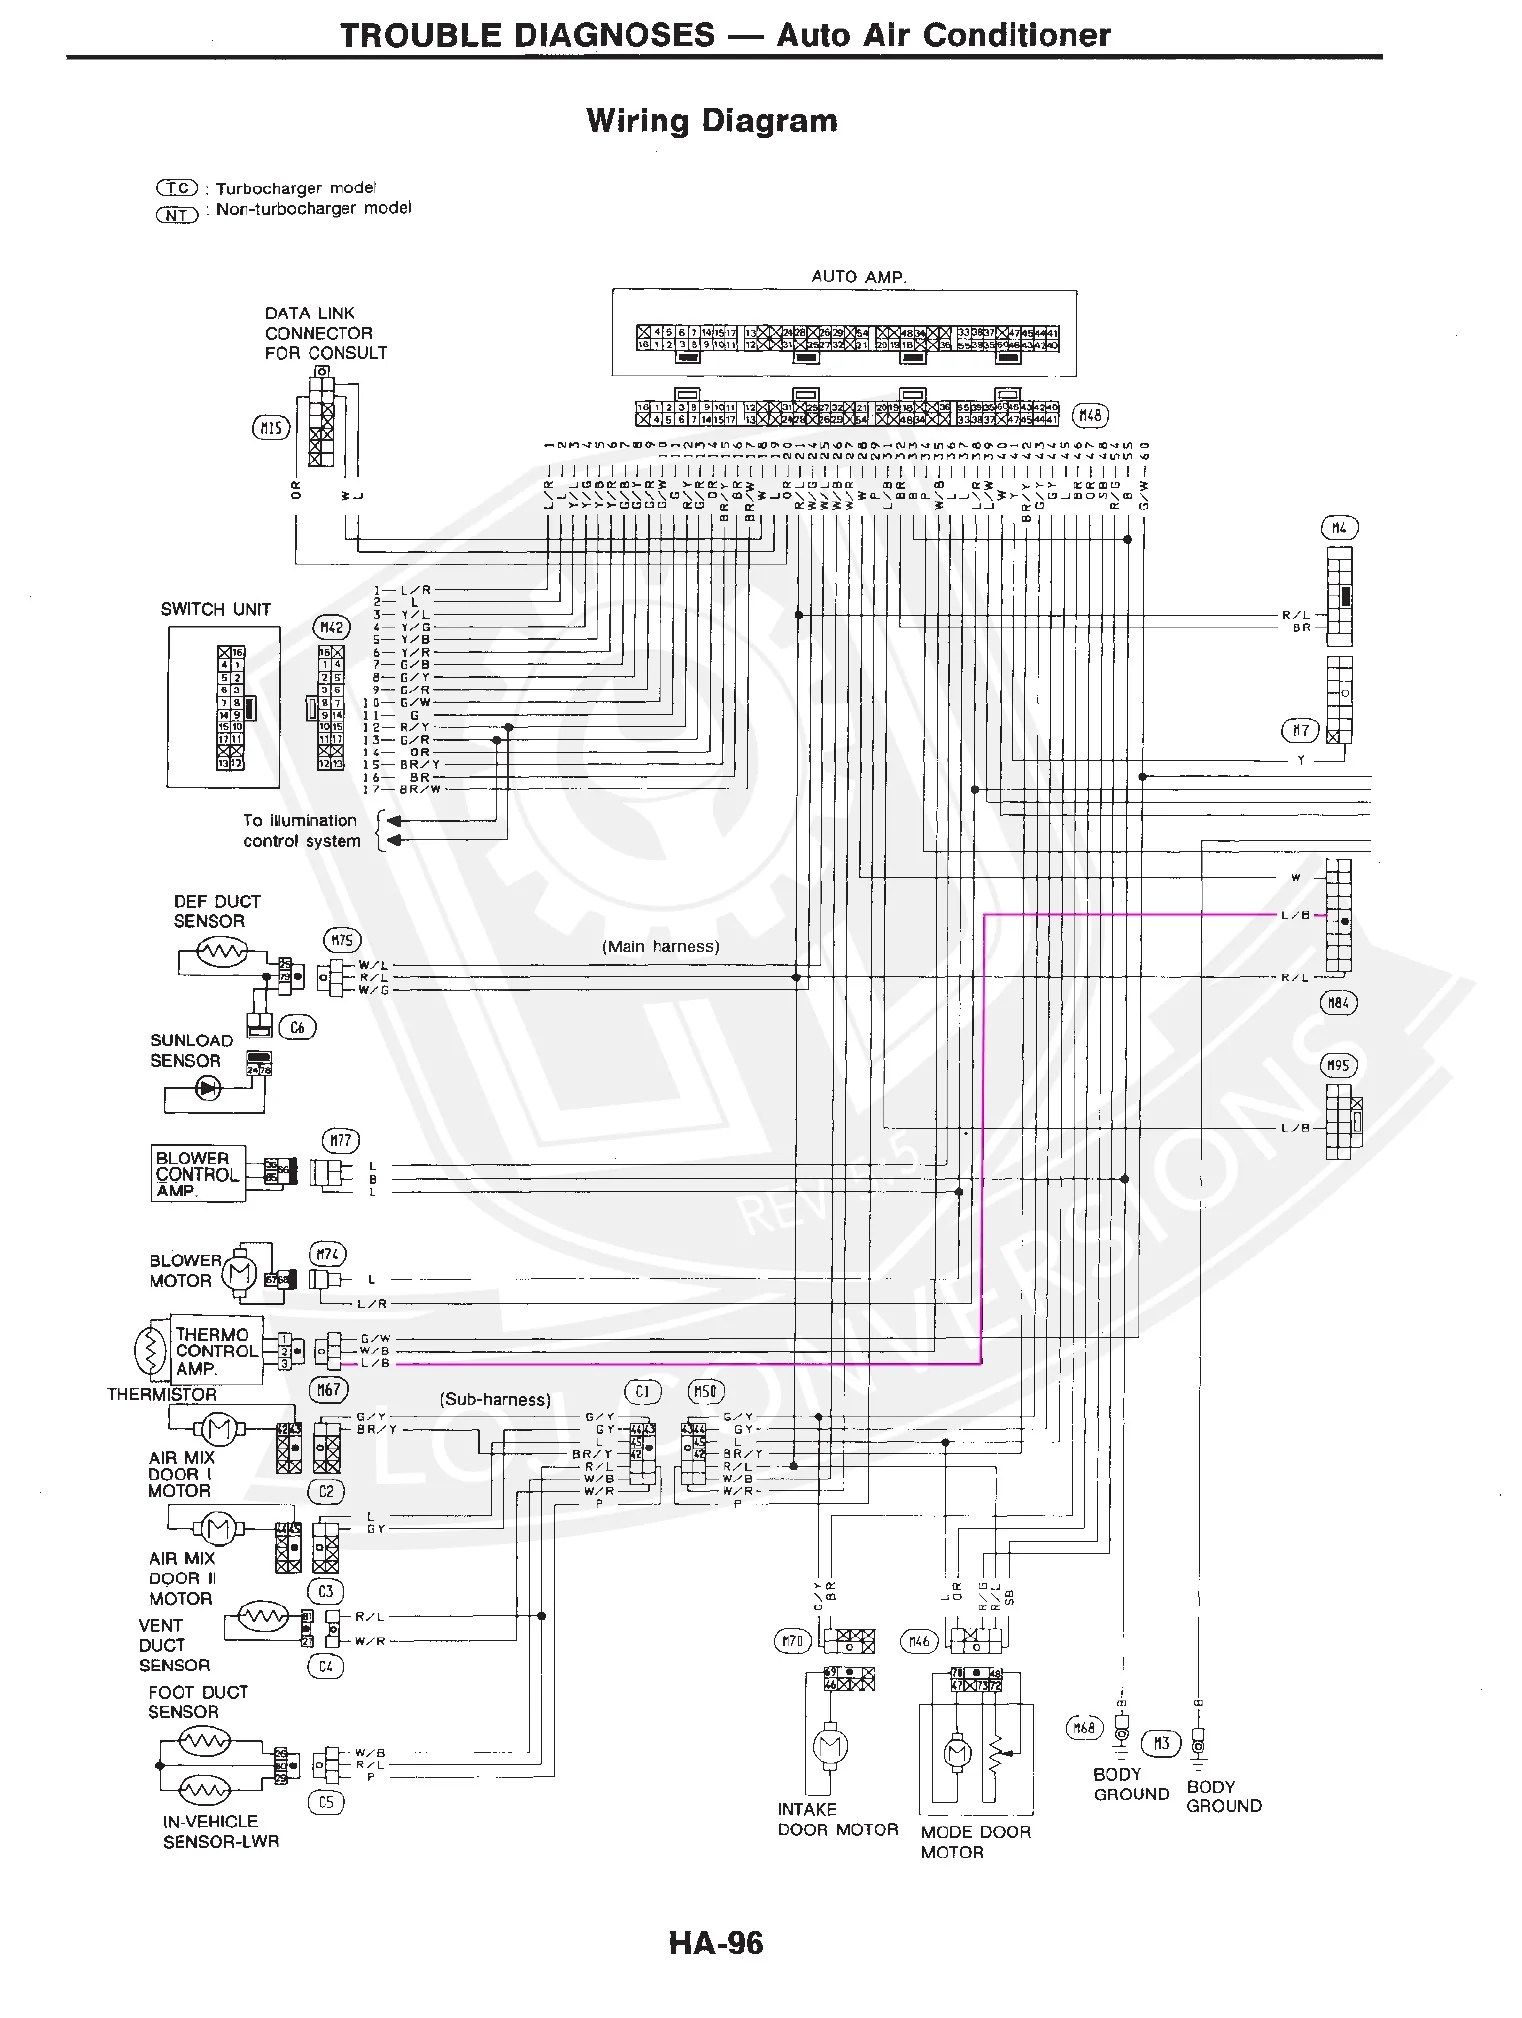 hight resolution of diagram likewise 1990 nissan 300zx wiring harness diagram also 1991 wiring diagram also 1990 nissan 300zx engine wiring harness further